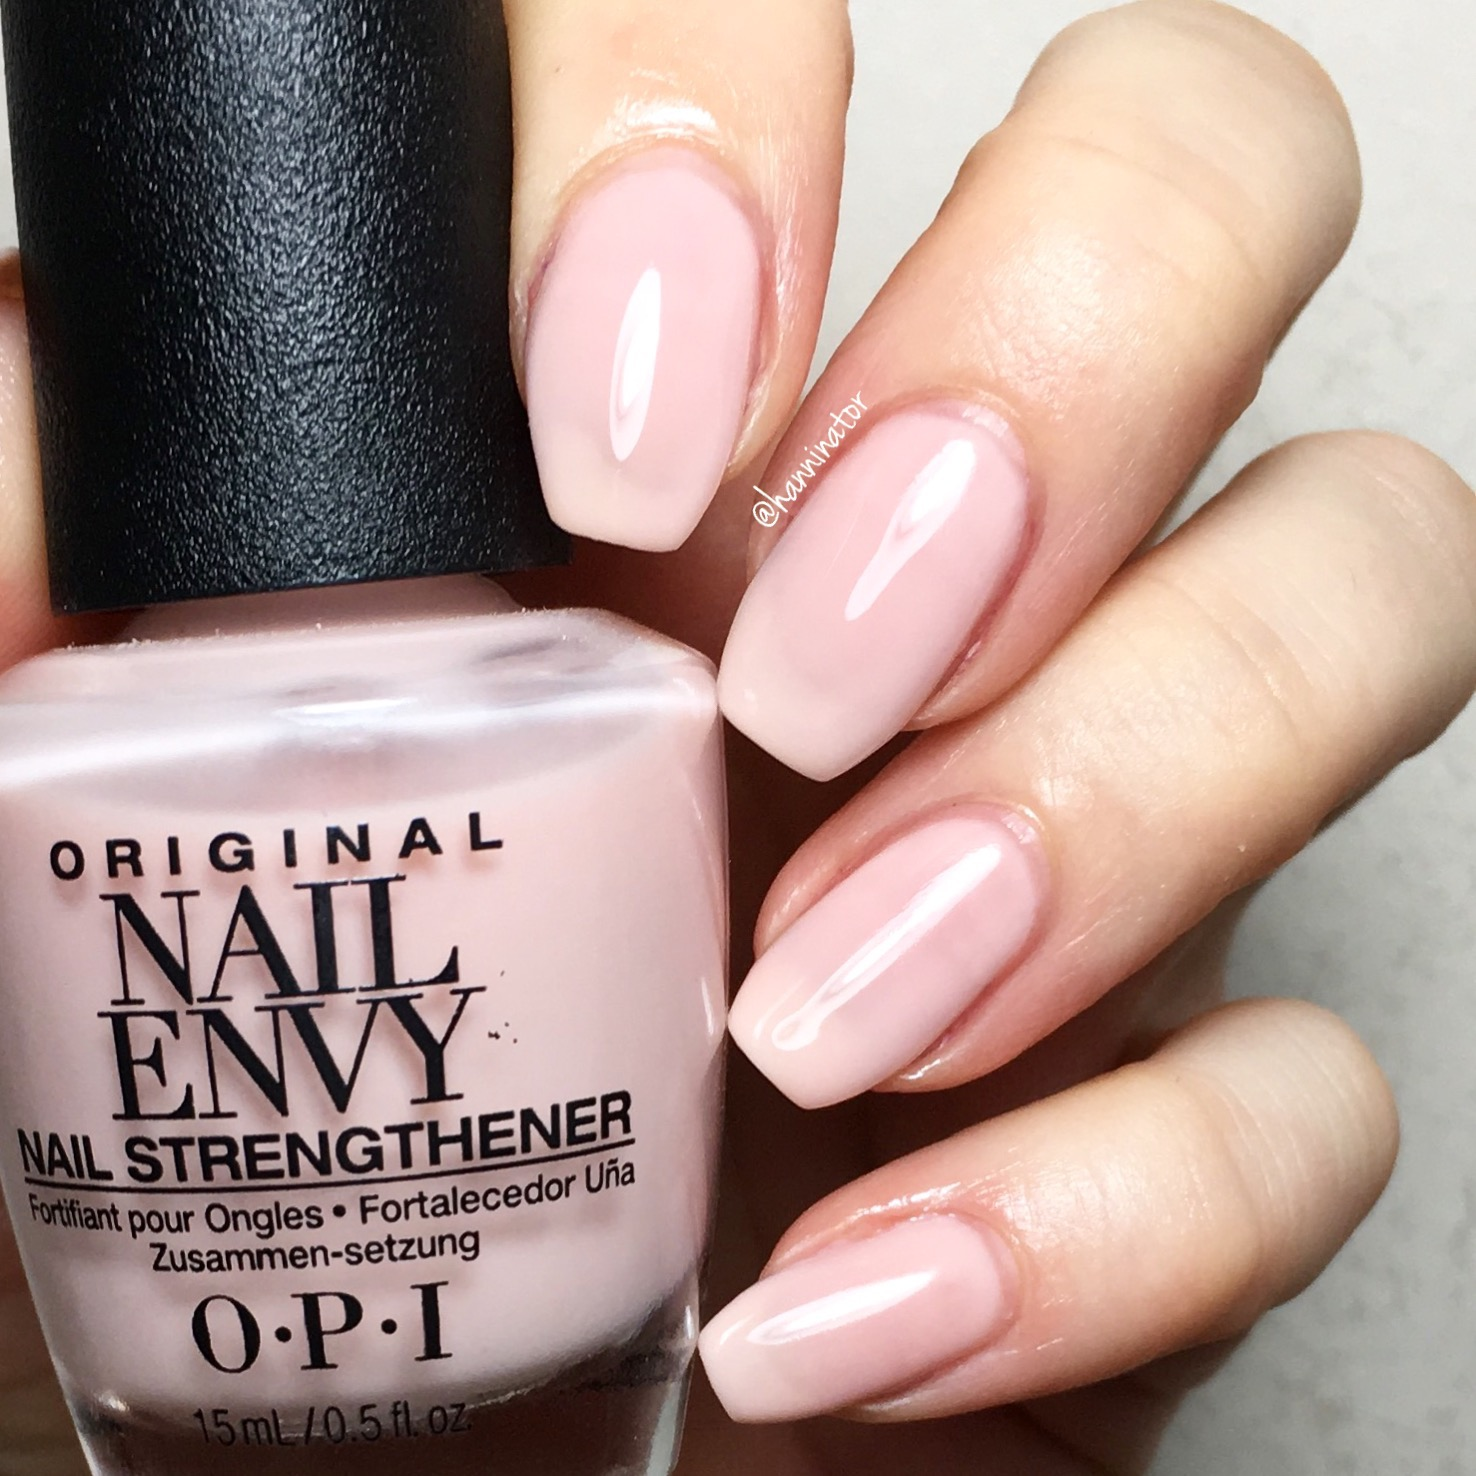 OPI Nail Envy Bubble bath – Hanninator